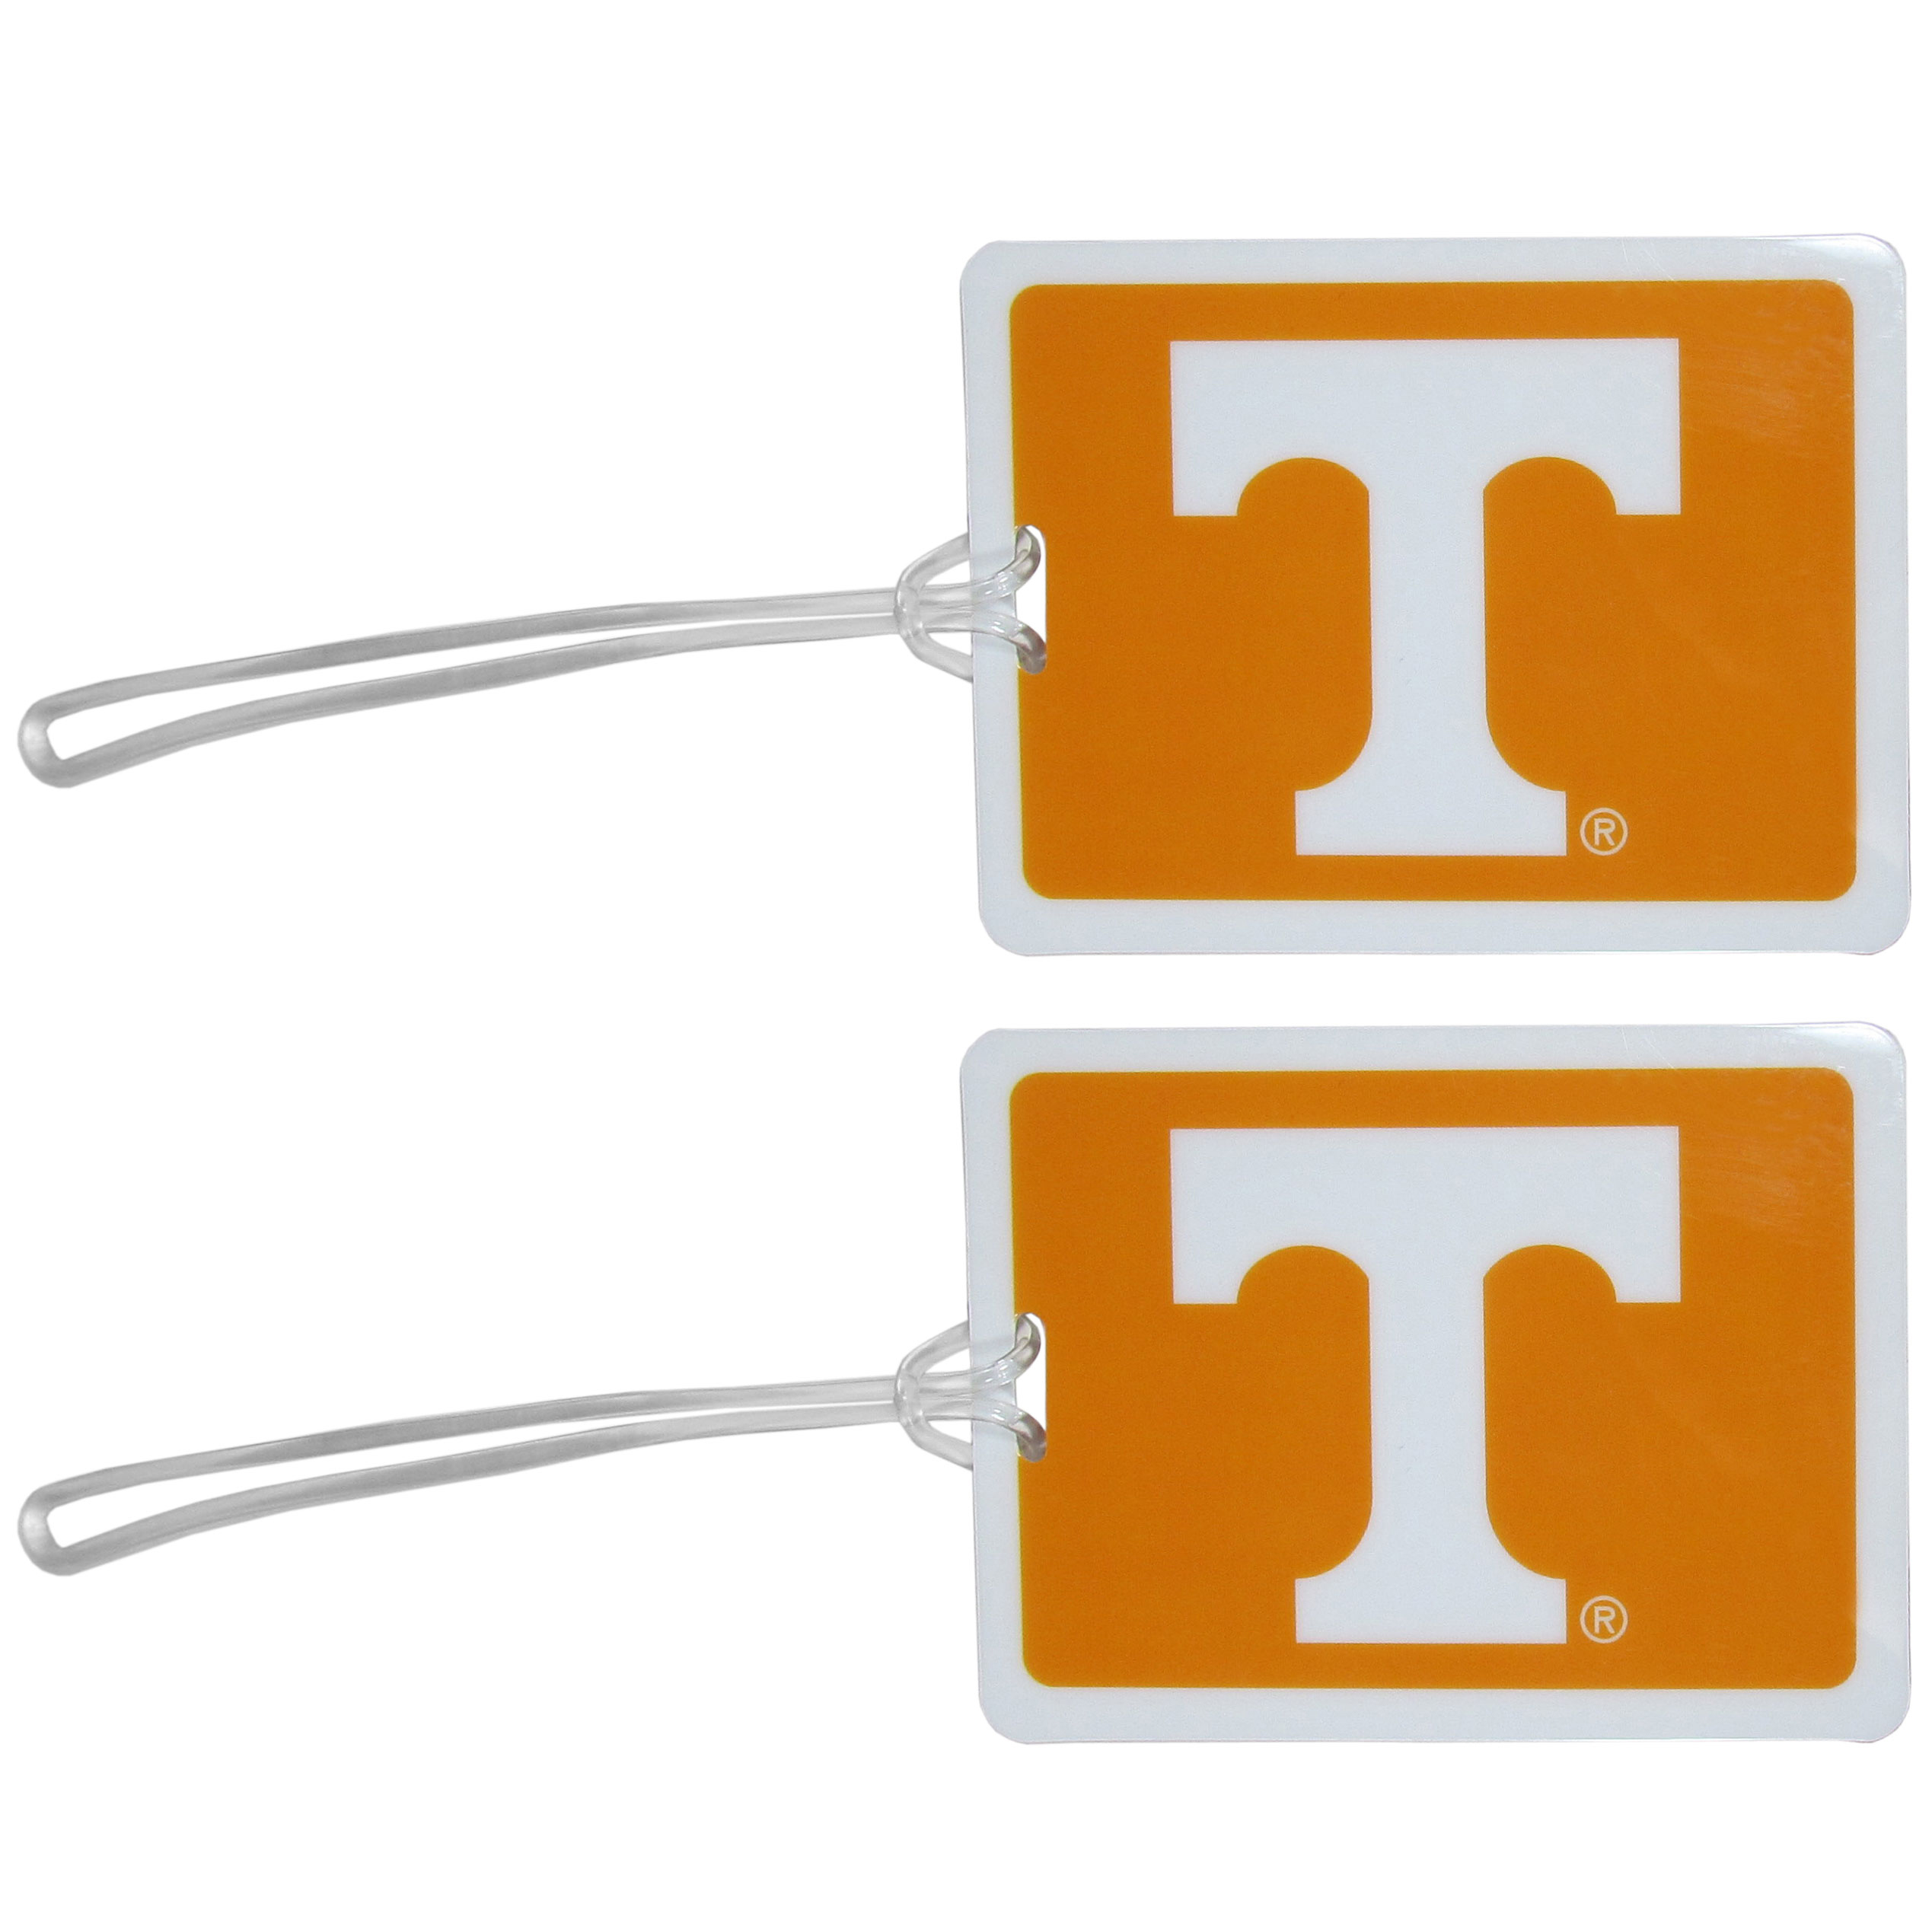 Tennessee Volunteers Vinyl Luggage Tag, 2pk - Tired of trying to spot your suitcase or bag in a sea of luggage? Try our large and colorful Tennessee Volunteers luggage tags. The tag is 4x3 inches and has a 5 inch cord to attach it easily to your bags, backpacks or luggage. The front of the tag features the team logo in a bright, team colored background and you can write you name, address and phone number on the back of the tag.